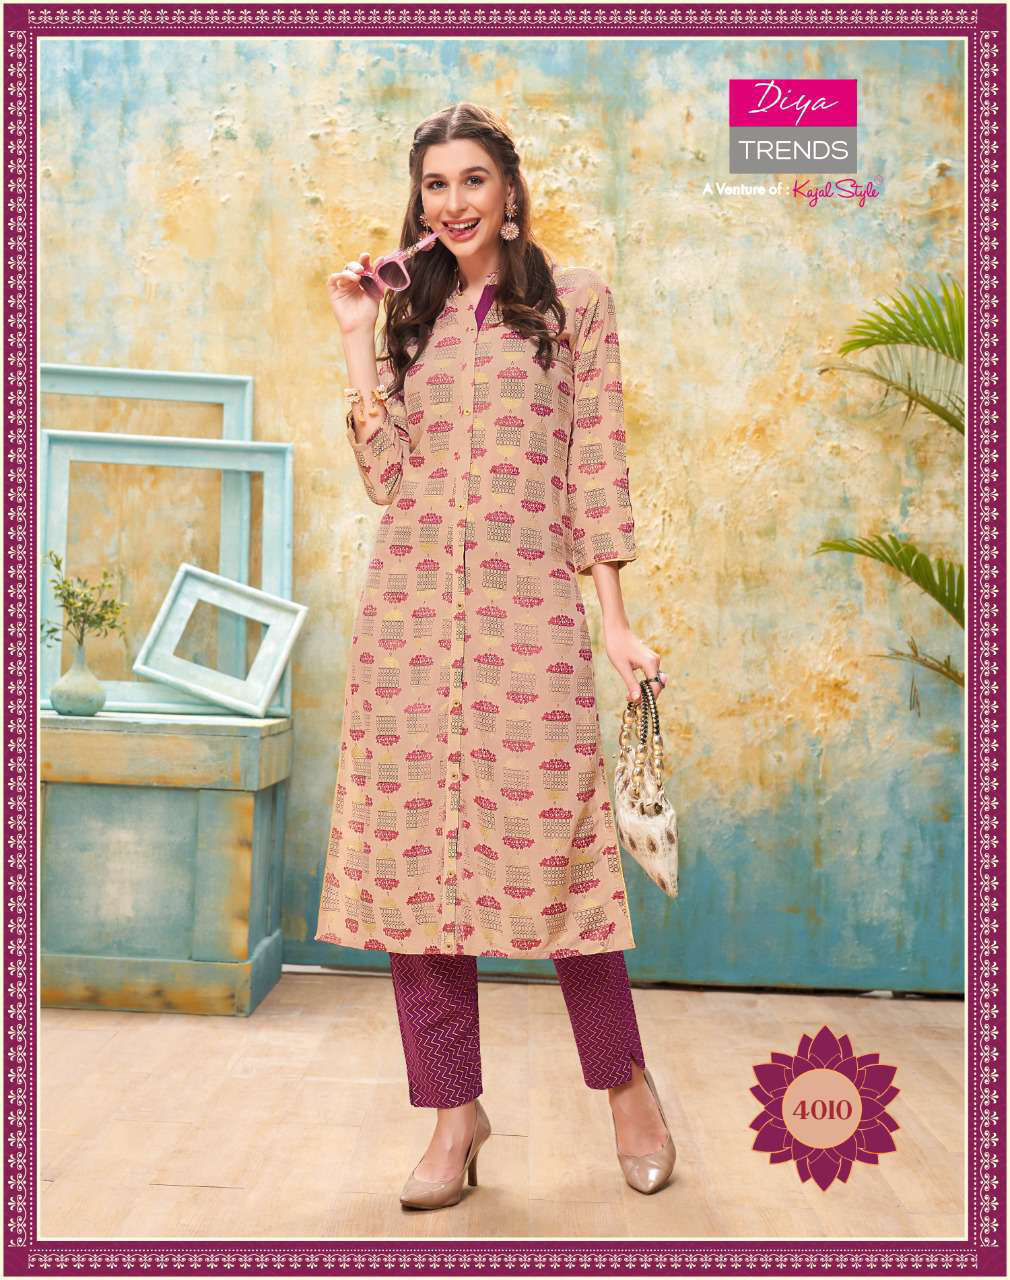 Diya Trends Forever Vol 4 by Kajal Style Kurti with Pant Wholesale Catalog 12 Pcs 11 - Diya Trends Forever Vol 4 by Kajal Style Kurti with Pant Wholesale Catalog 12 Pcs